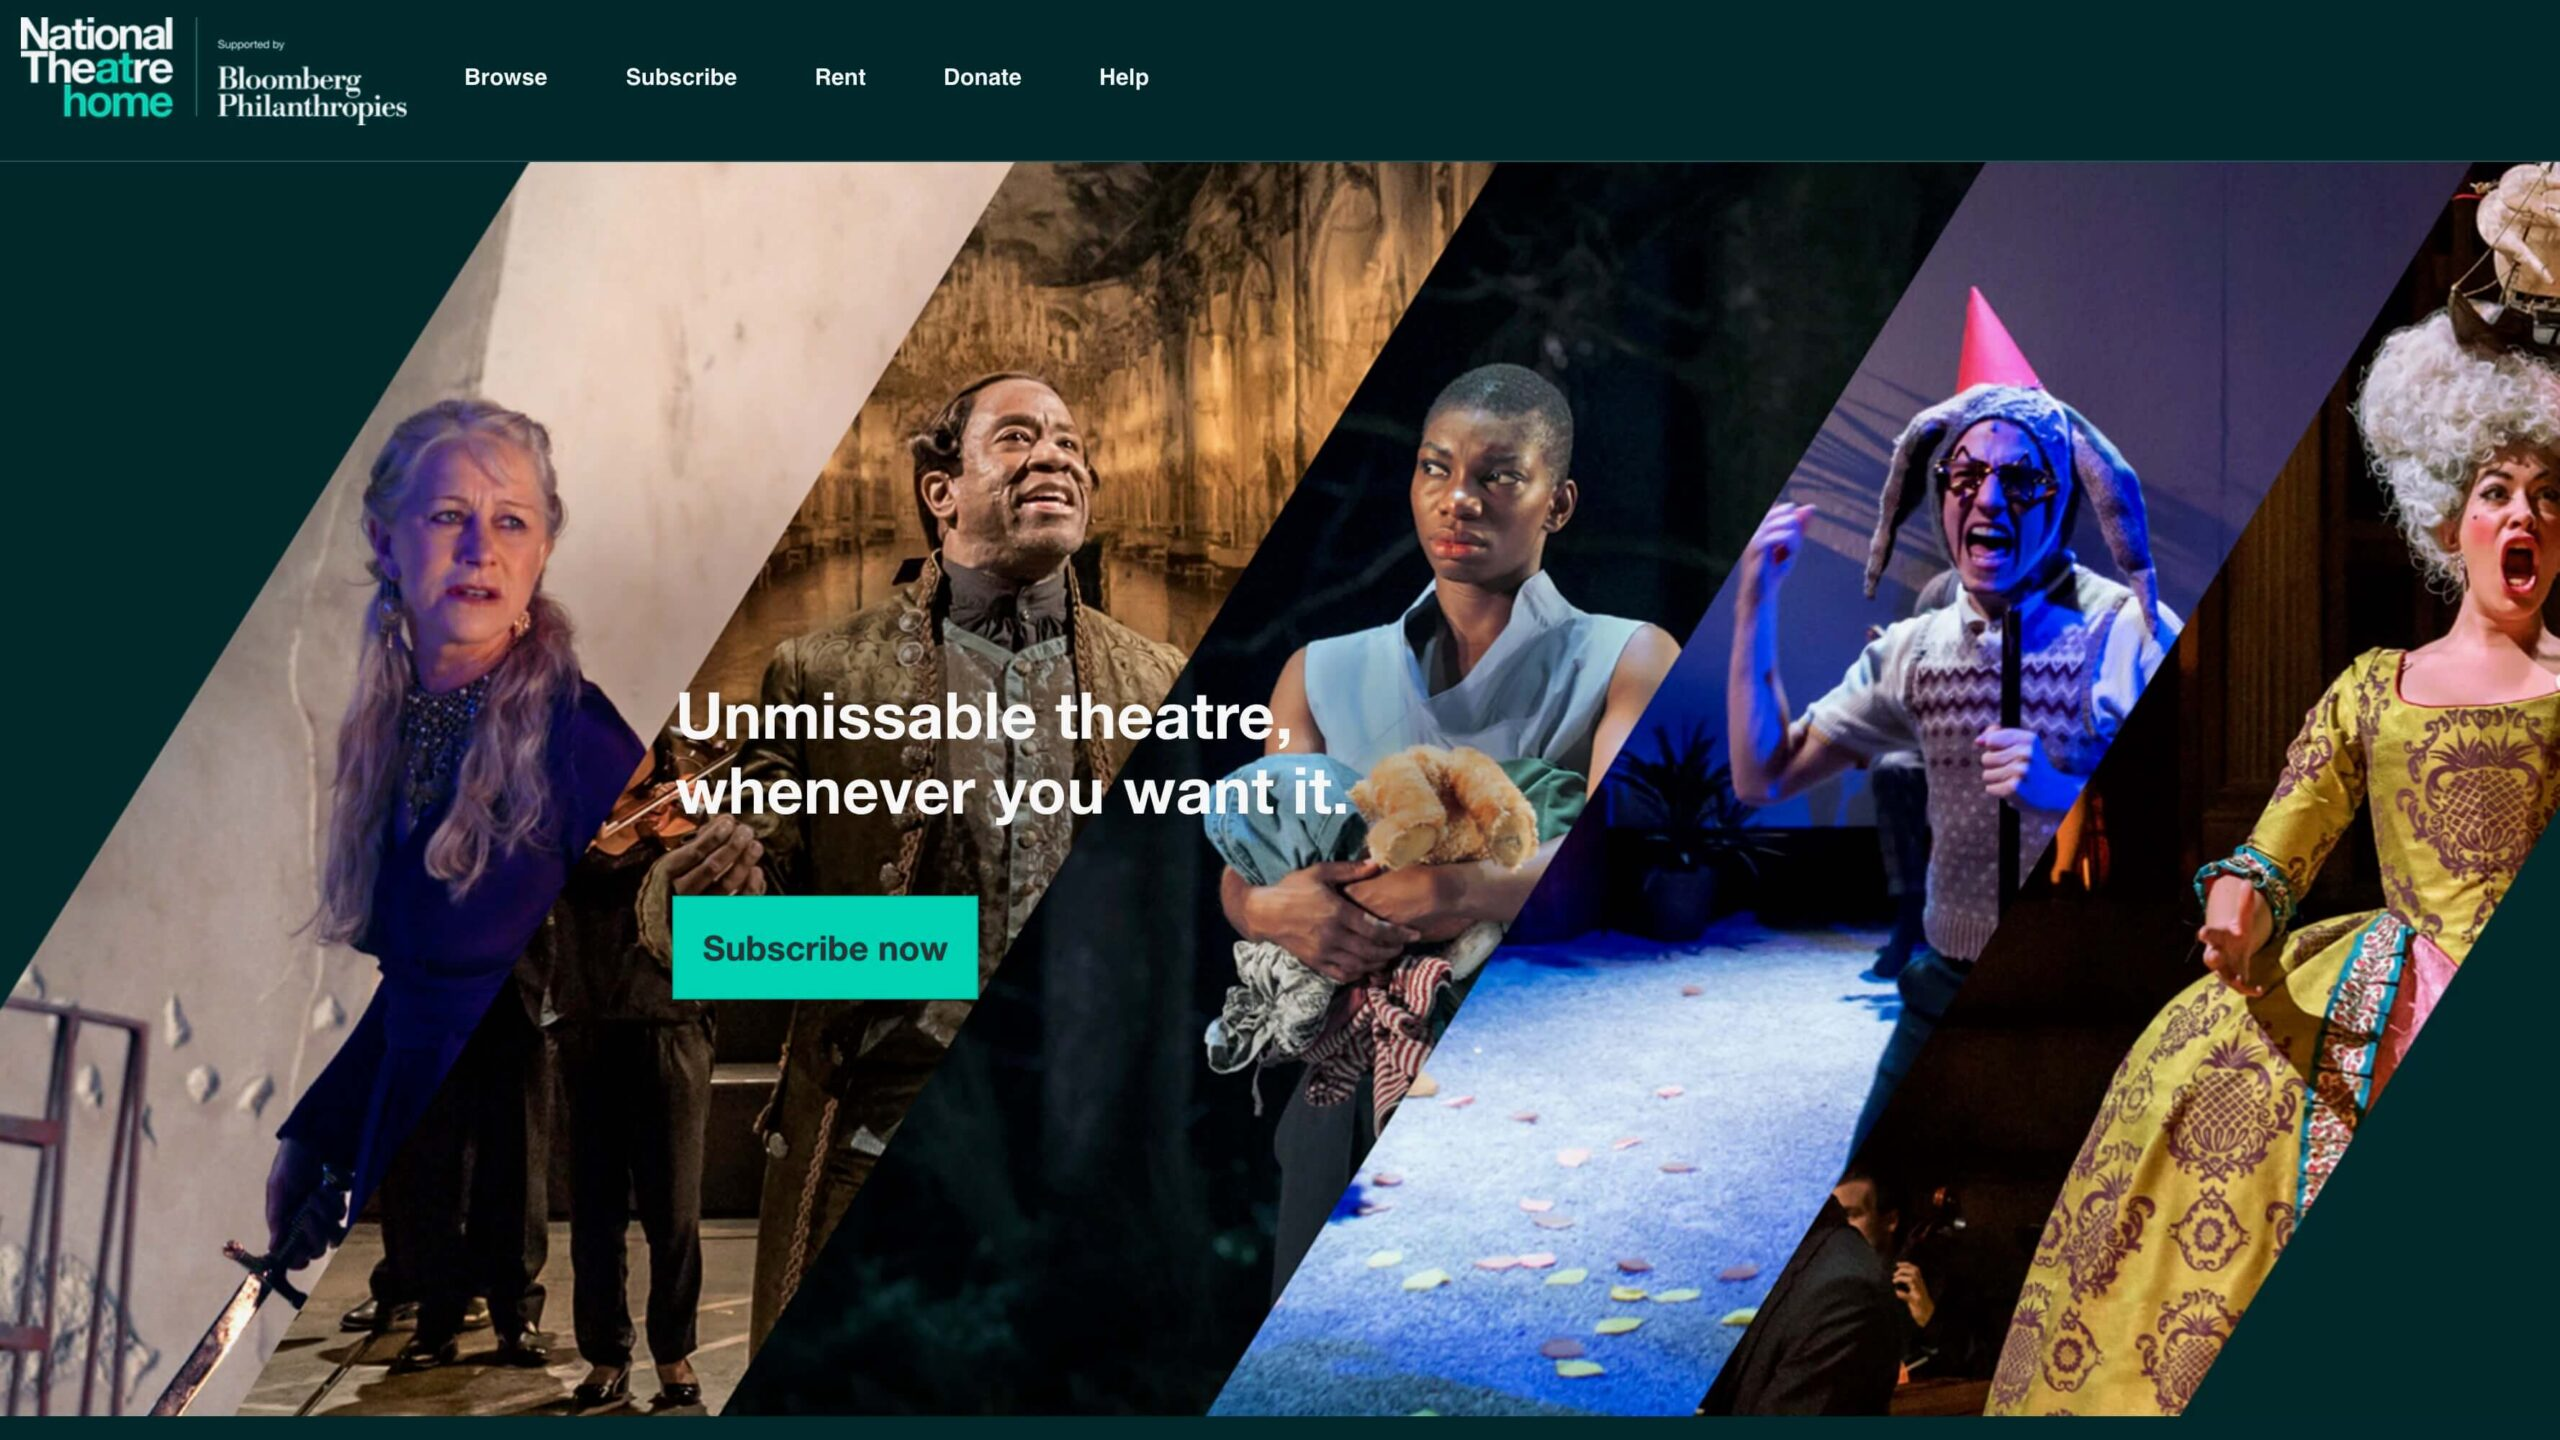 National Theatre launches streaming service